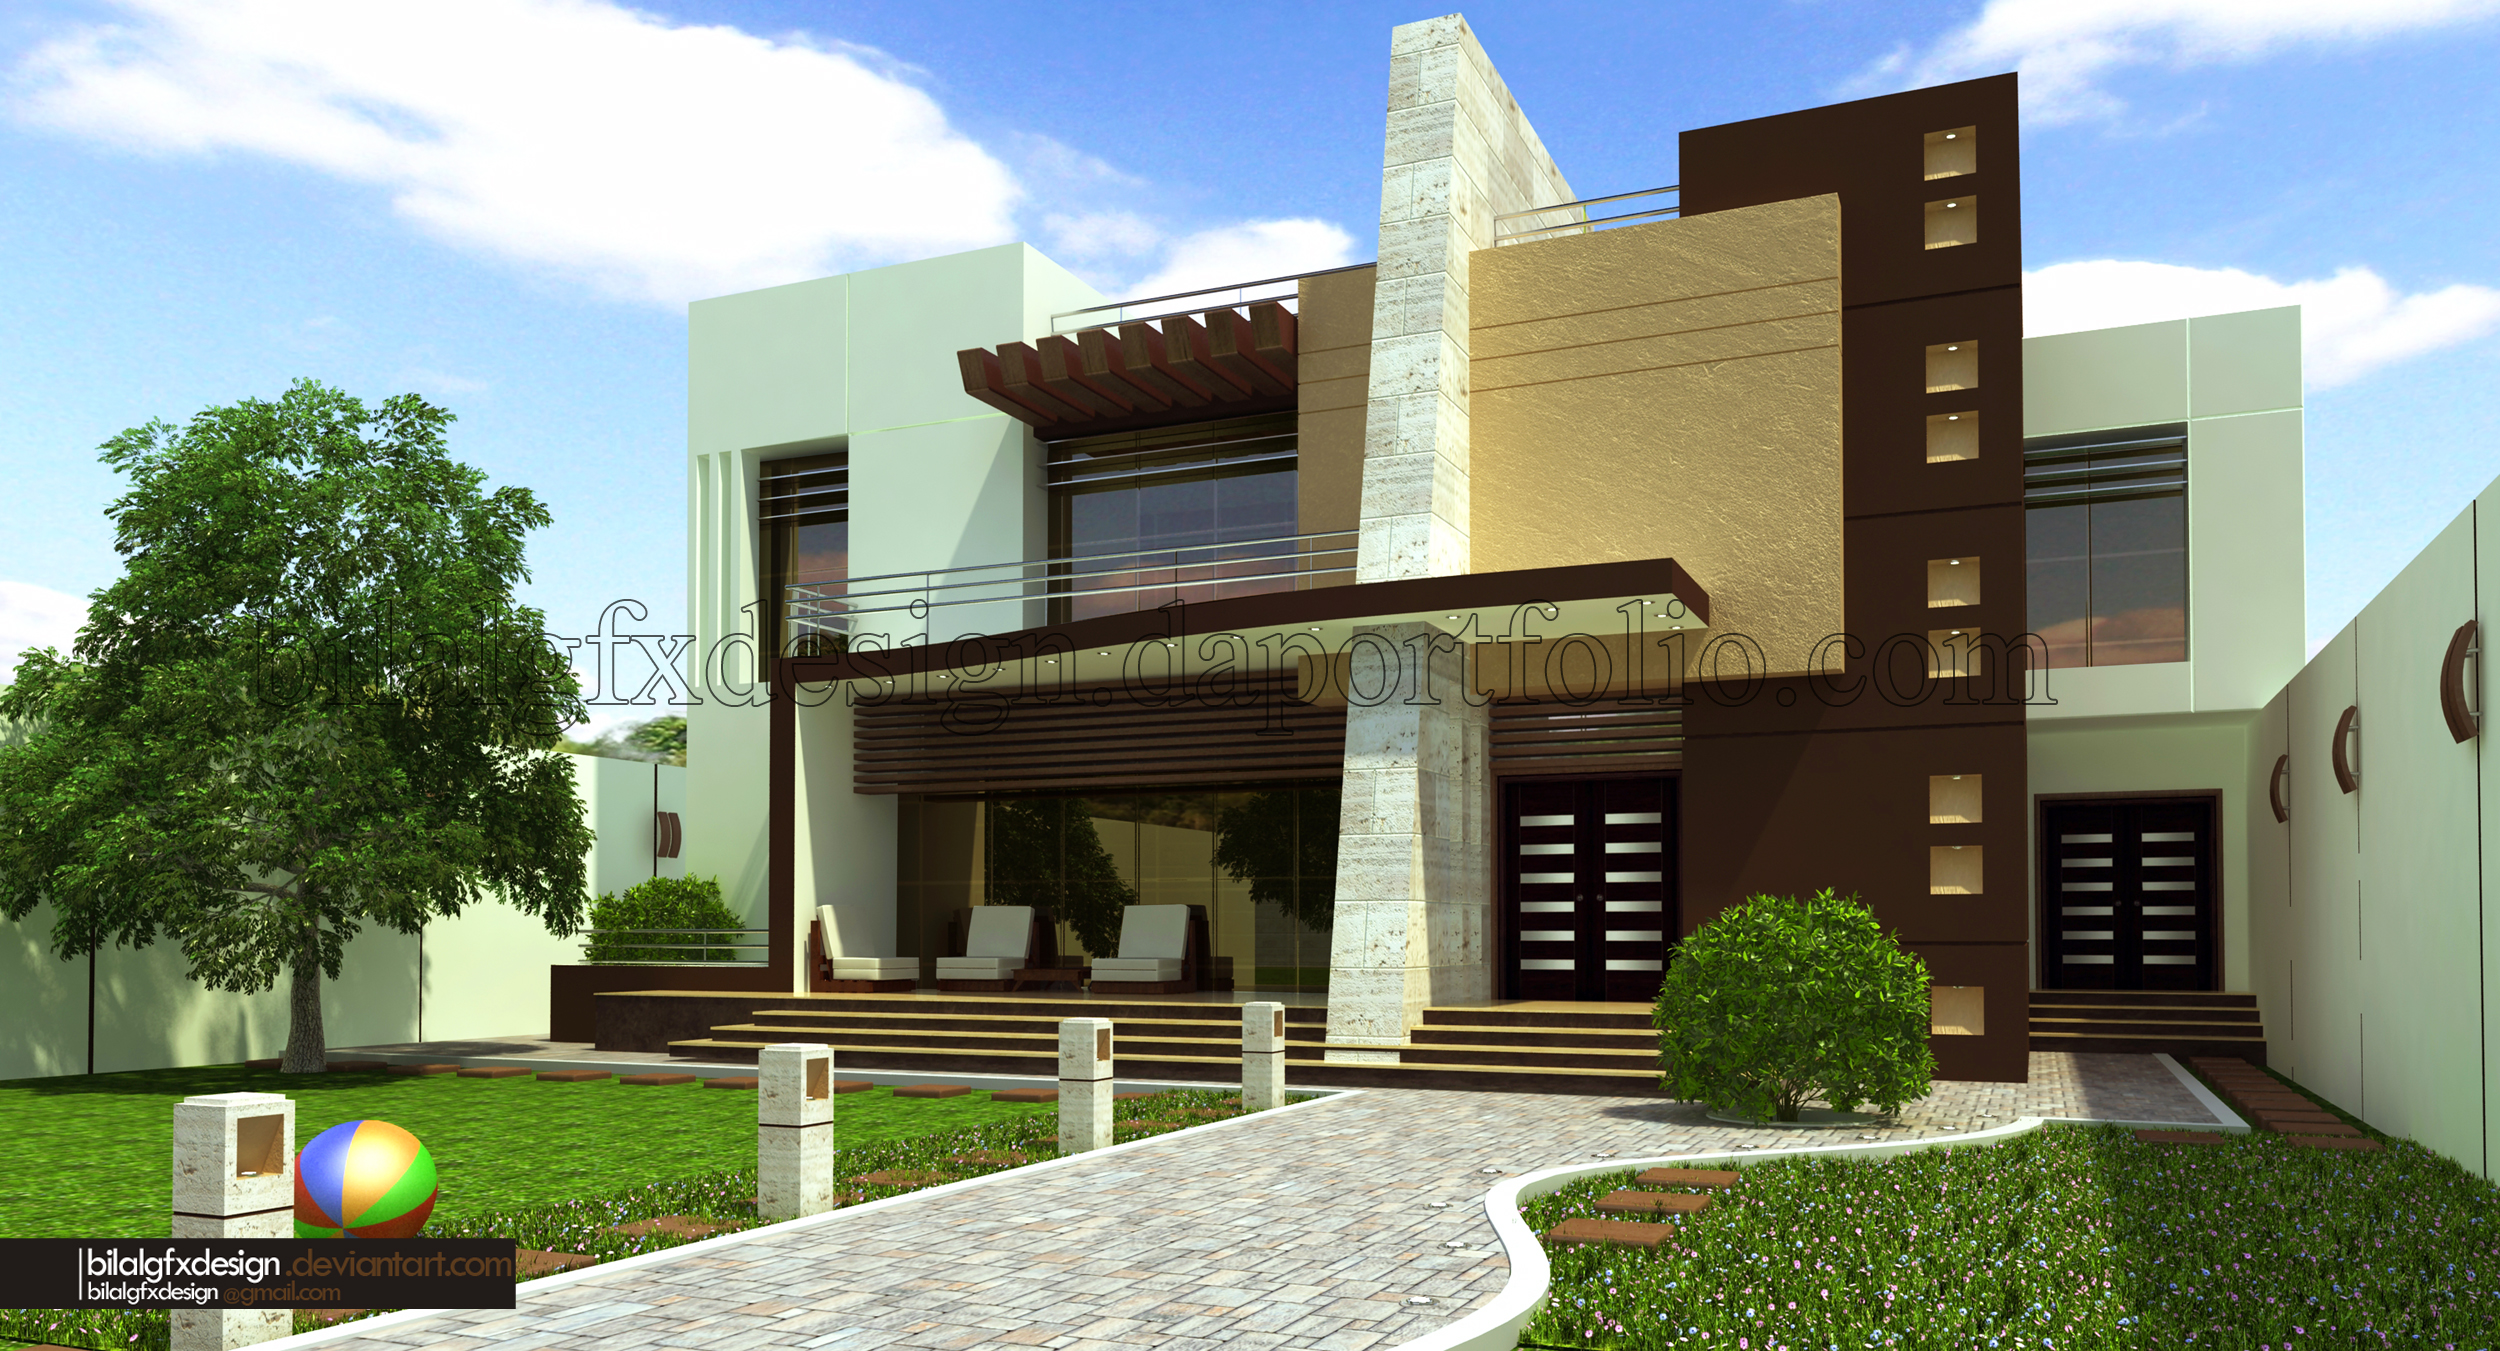 Modern villa 1 by bilalgfxdesign on deviantart Modern villa plan